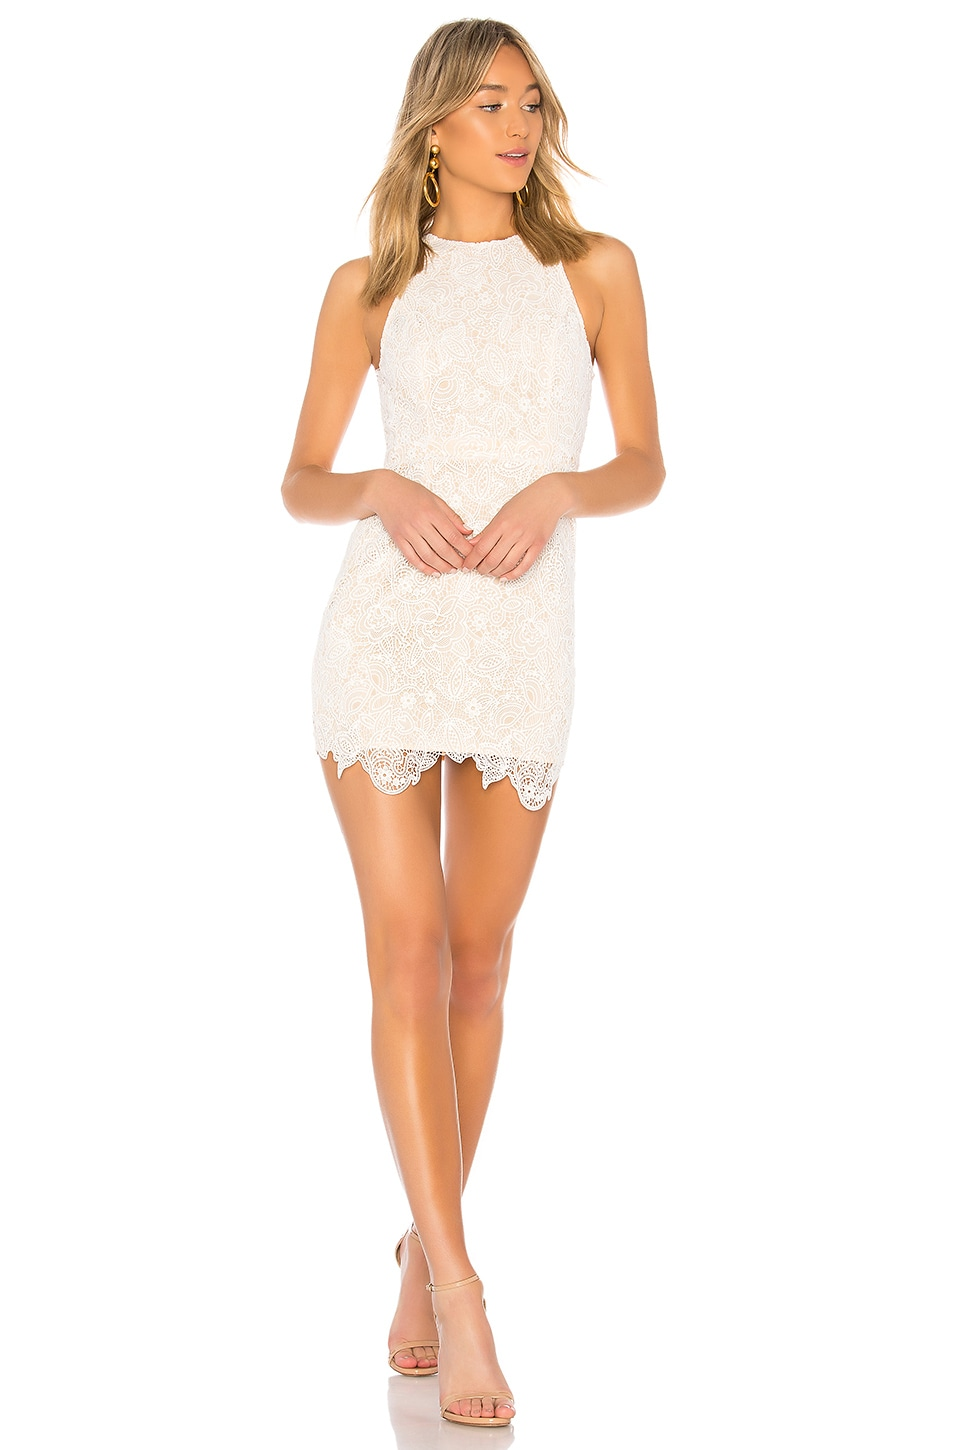 Patty High Neck Crochet Dress             superdown                                                                                                       CA$ 105.38 18